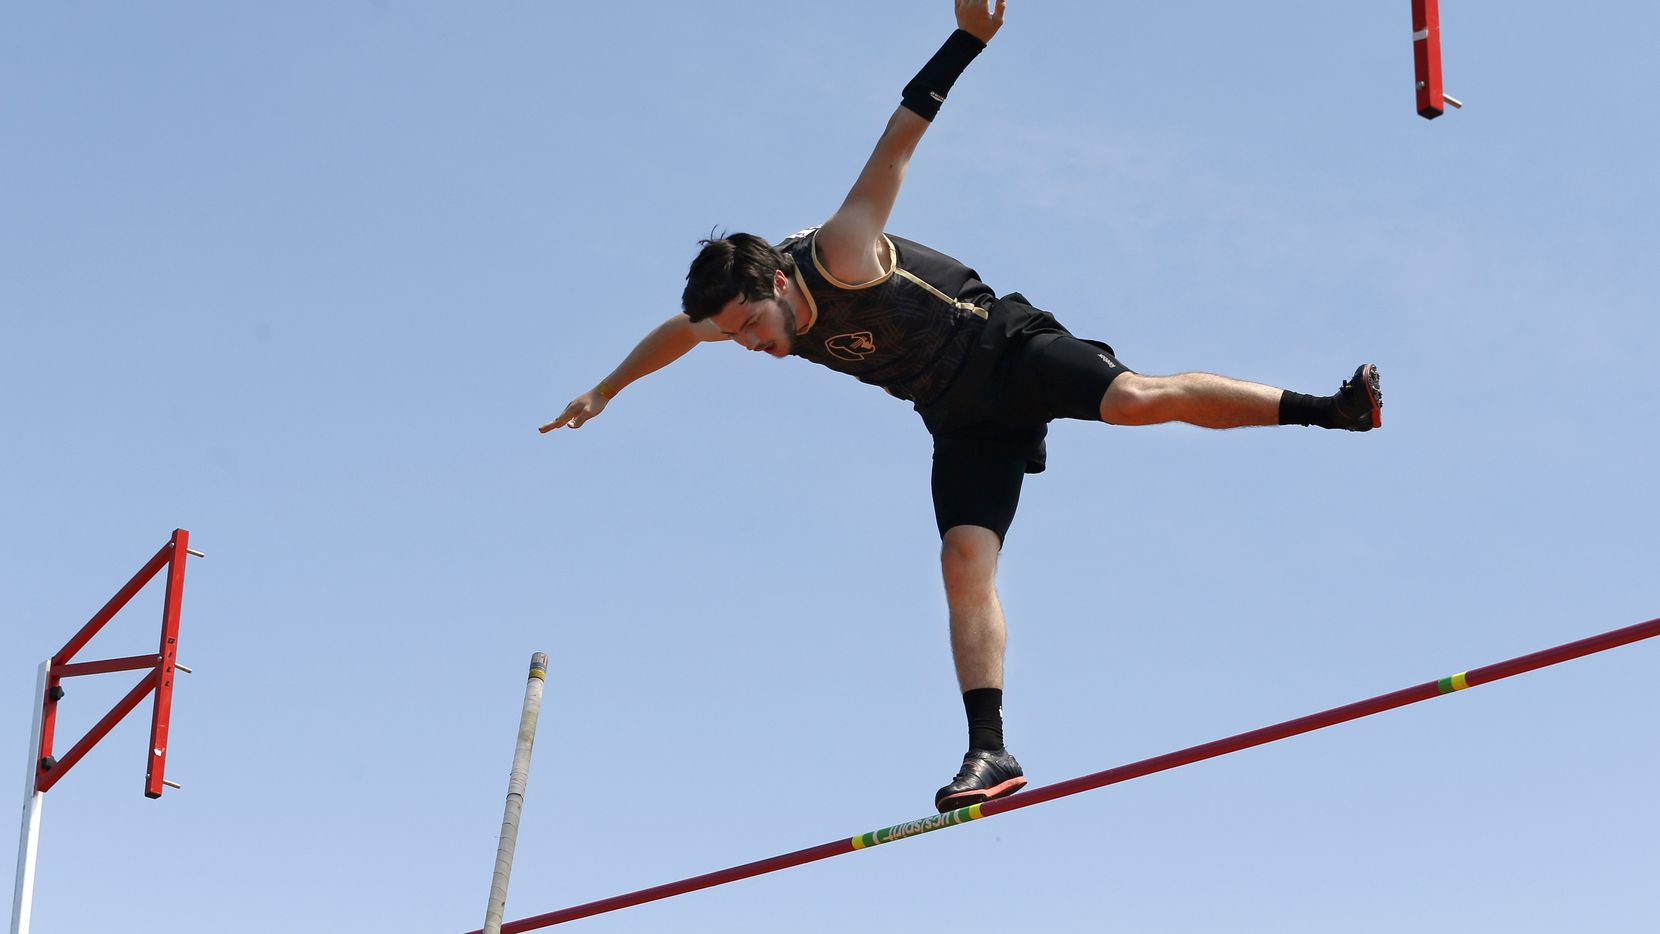 Pole vaulter Connor Gregston of Keller Fossil Ridge appears to be standing on the crossbar as he attempted a jump at 16 feet, 3 inches at the Class 6A Region I meet on April 26, 2019. Gregston finished second and qualified for the state meet. (Tom Fox/The Dallas Morning News)